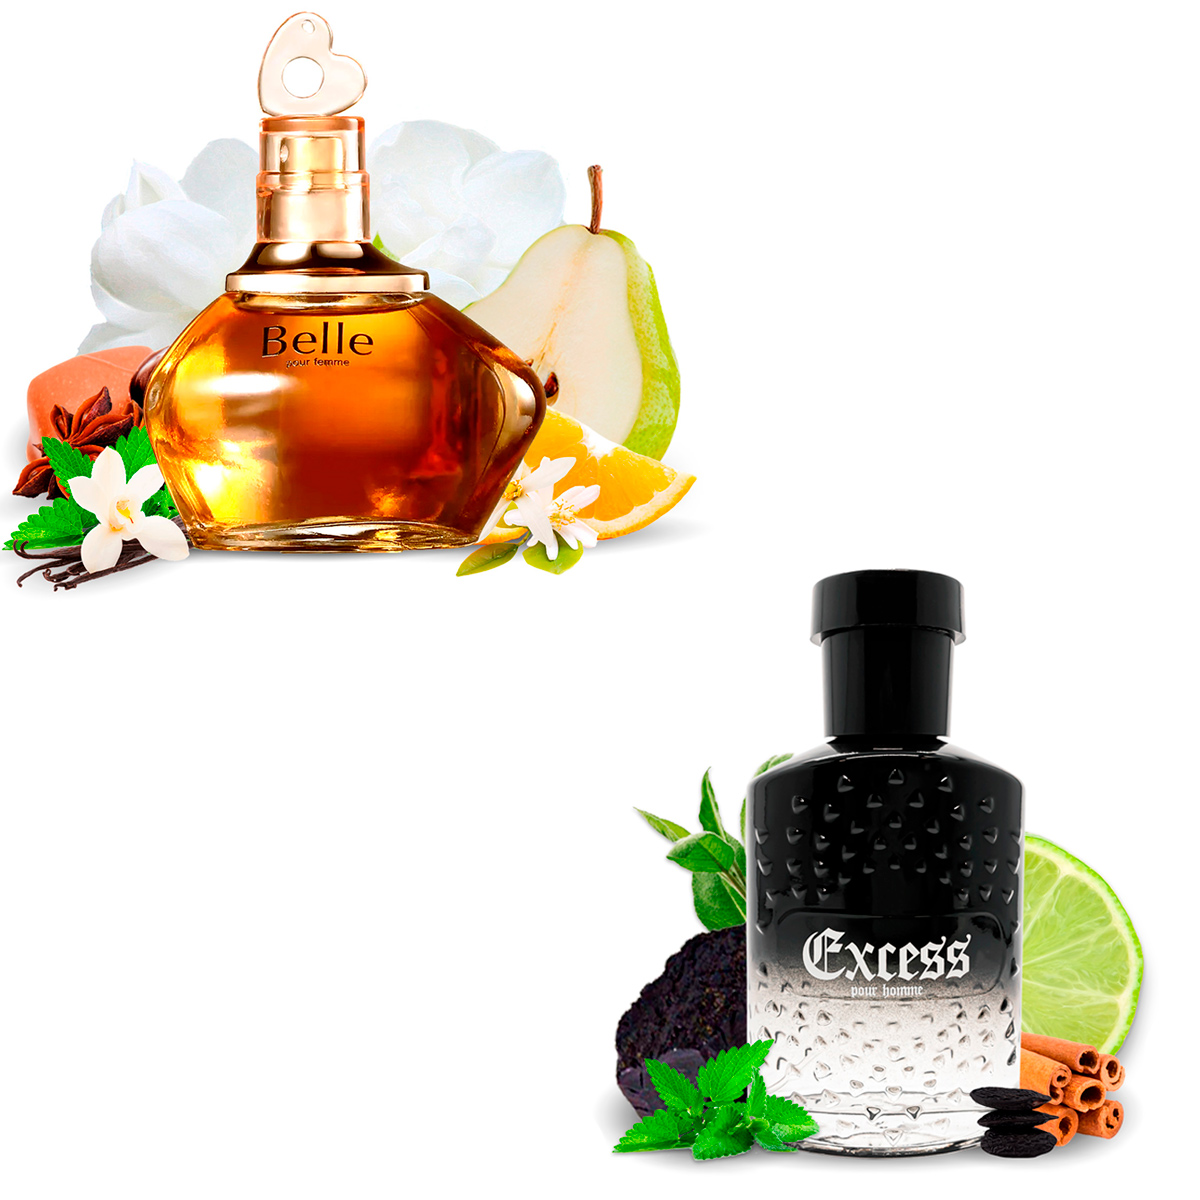 Kit 2 Perfumes Importados Belle e Excess I Scents